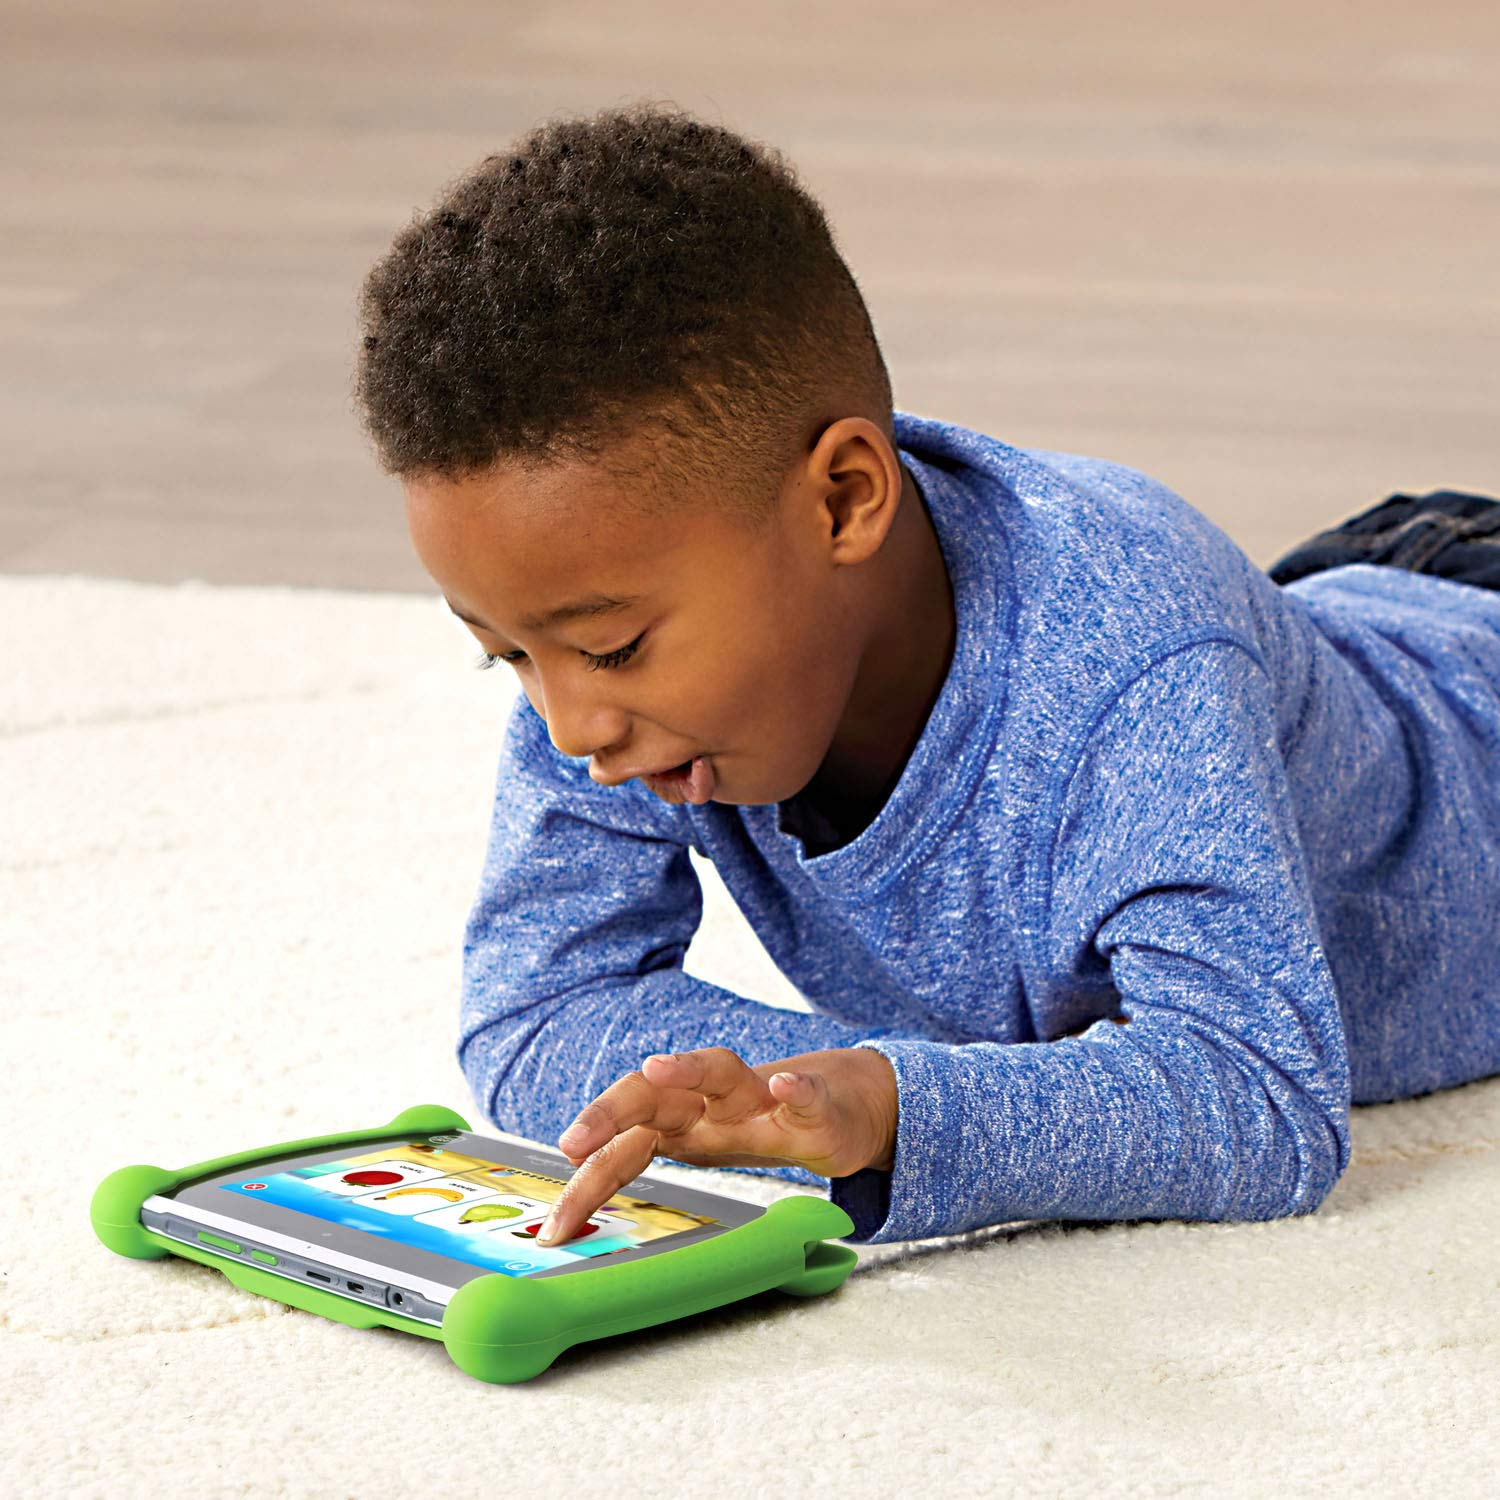 LeapFrog LeapPad Academy Kids' Learning Tablet, Green by LeapFrog (Image #7)